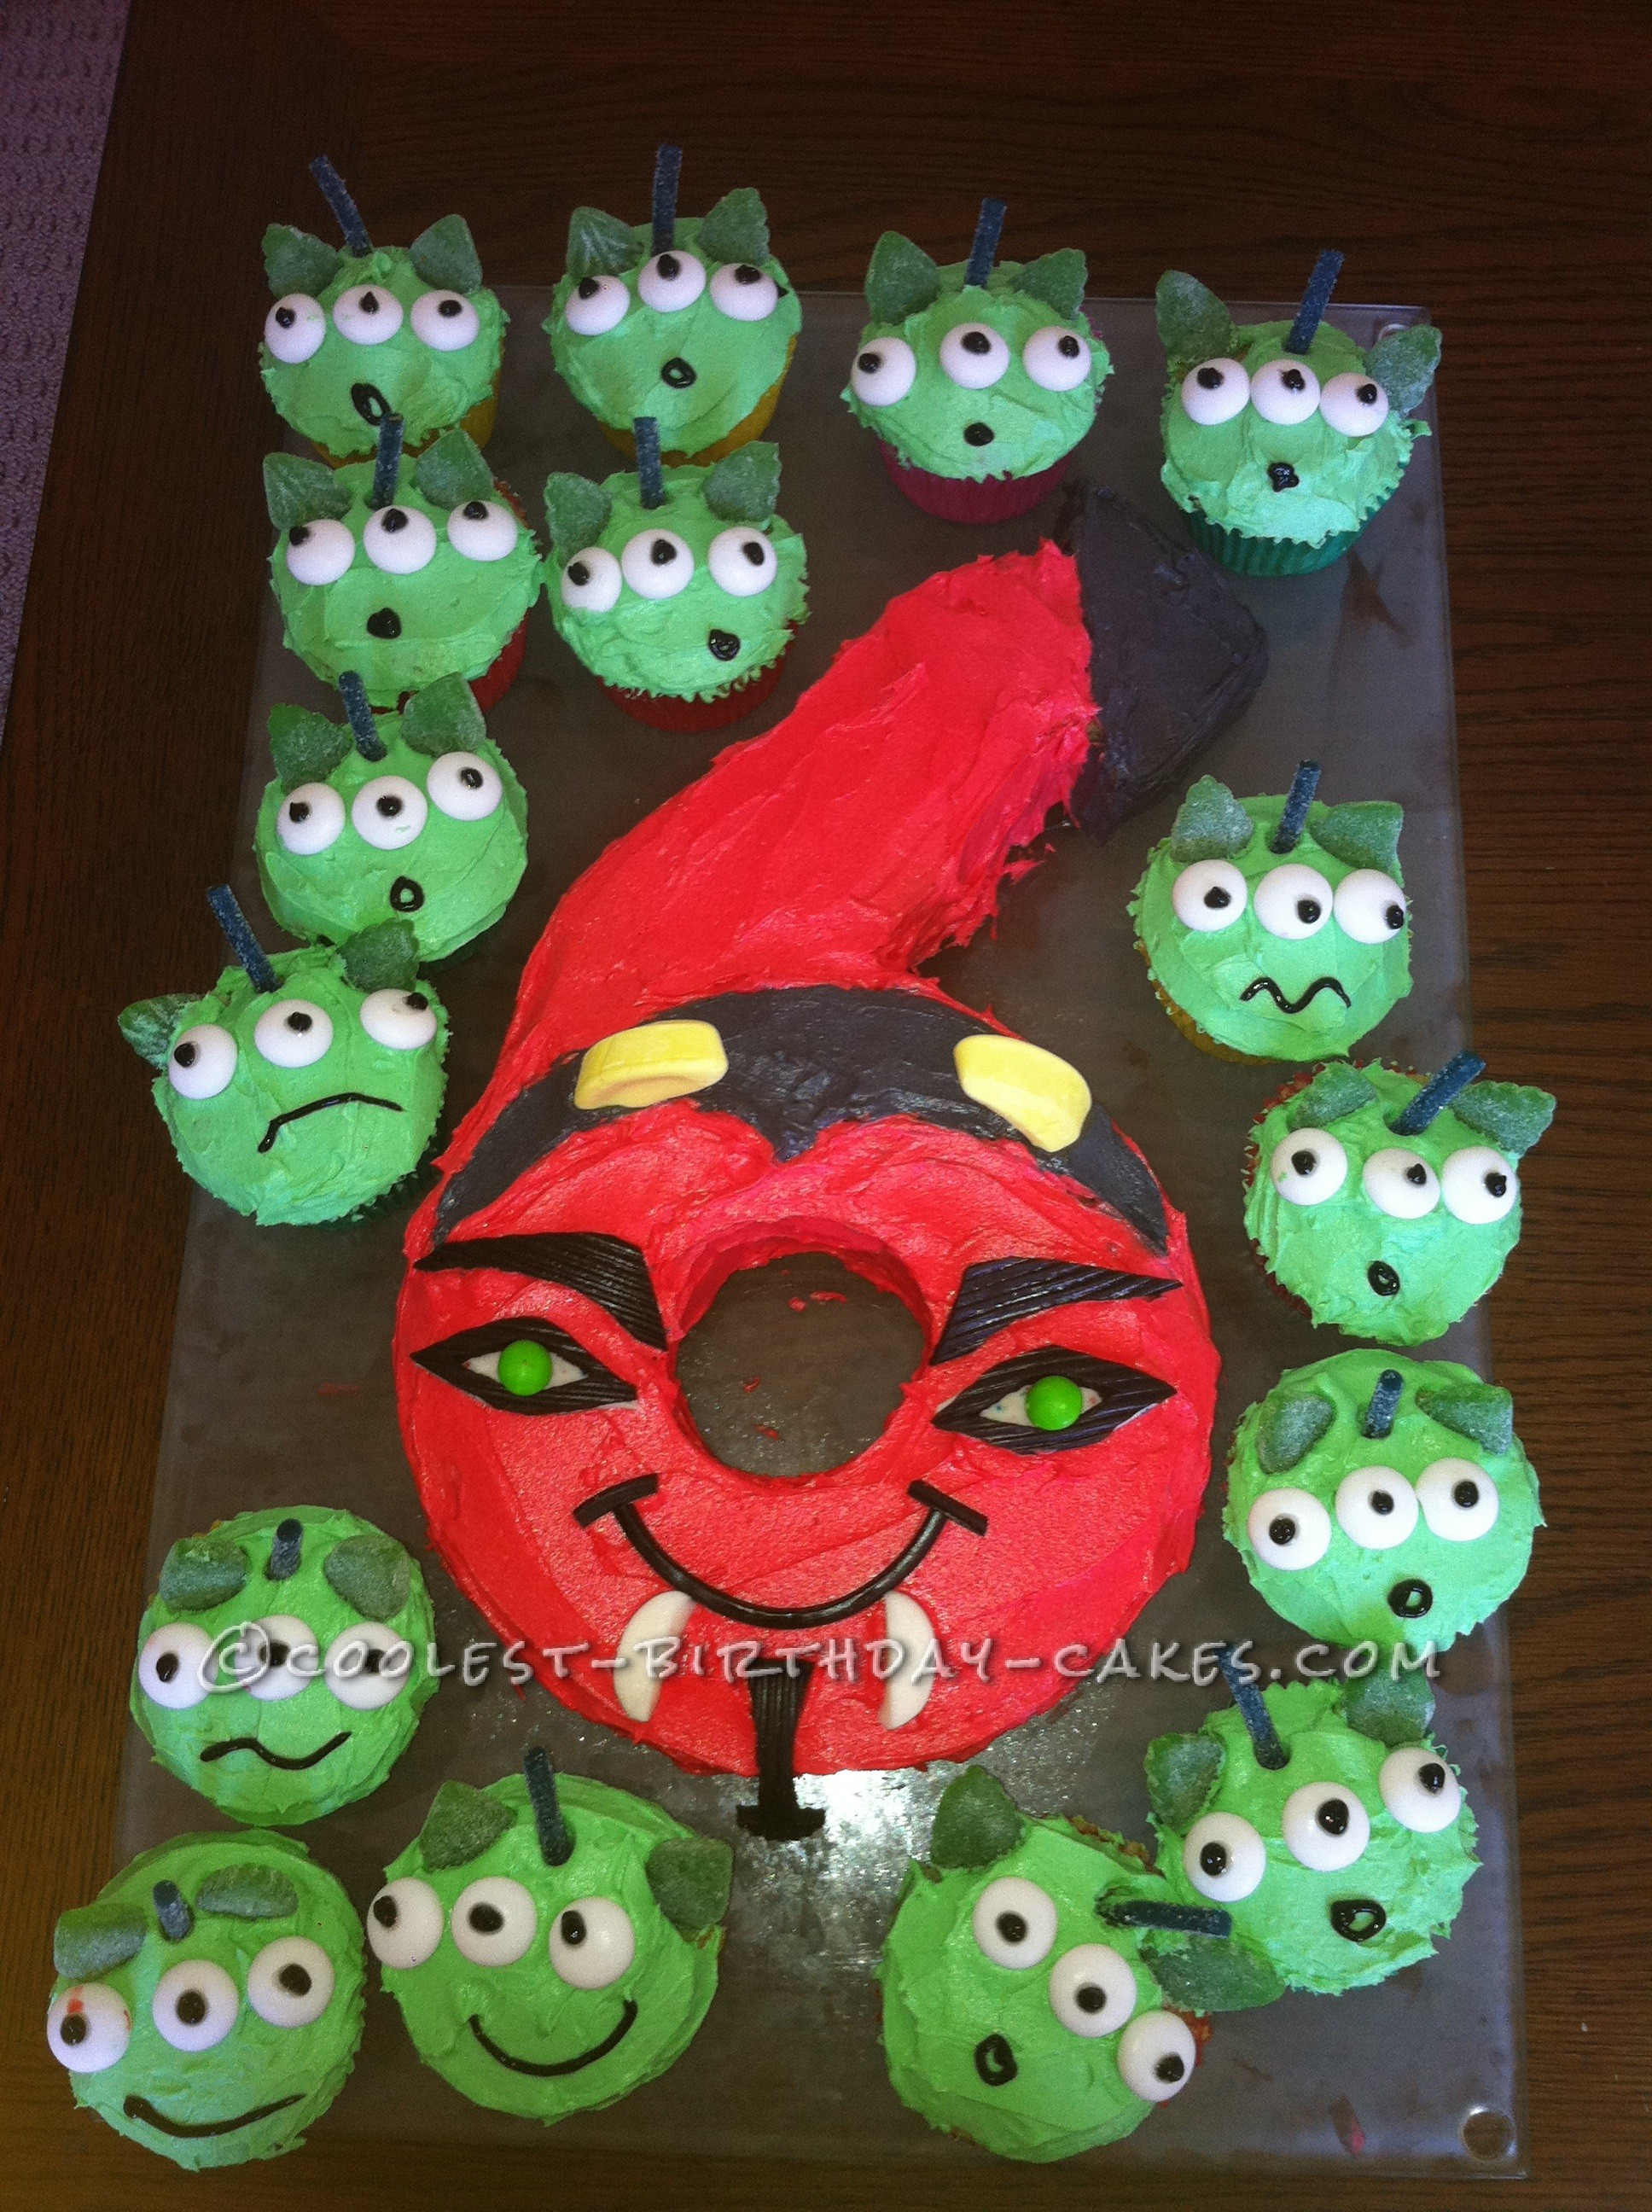 Awesome Devil Cake With Alien Cupcakes